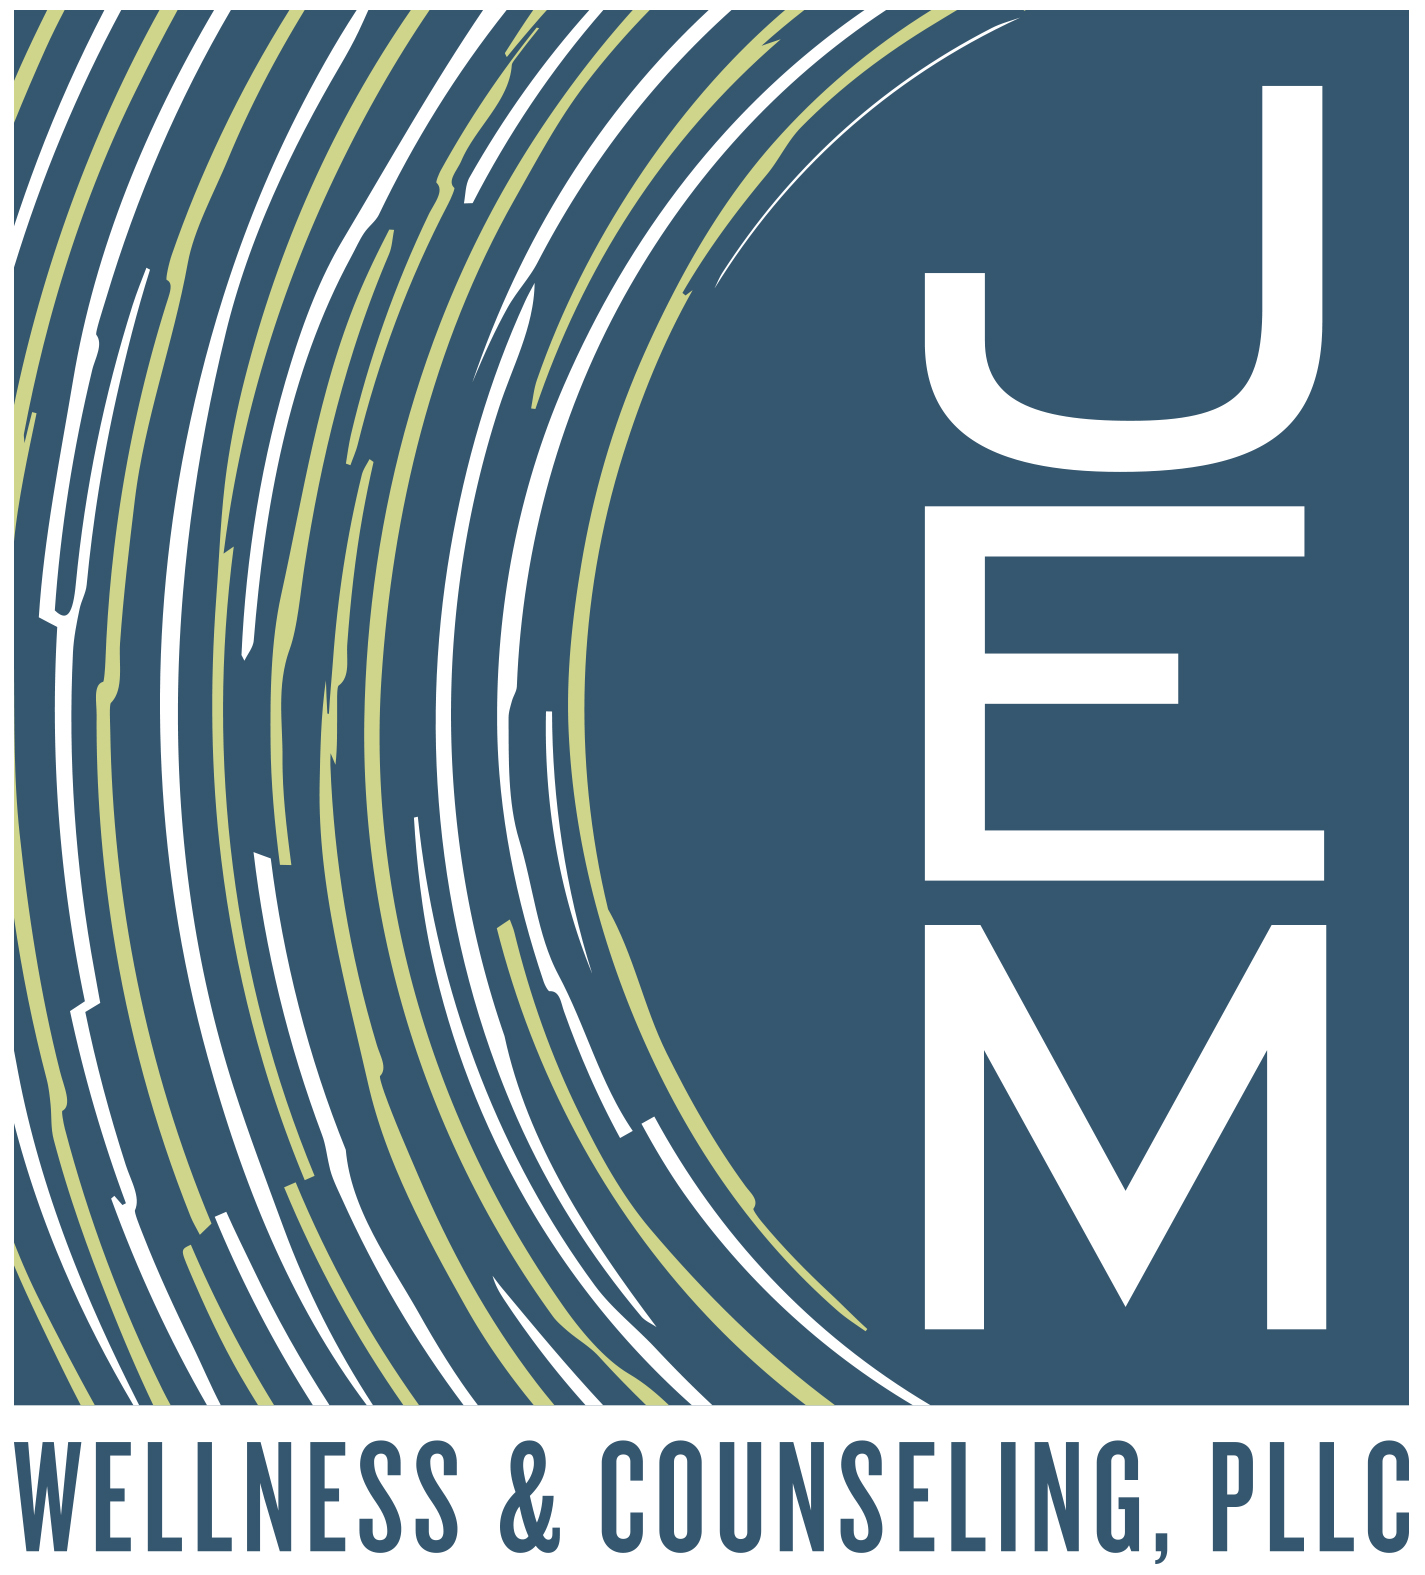 JEM Wellness & Counseling, PLLC